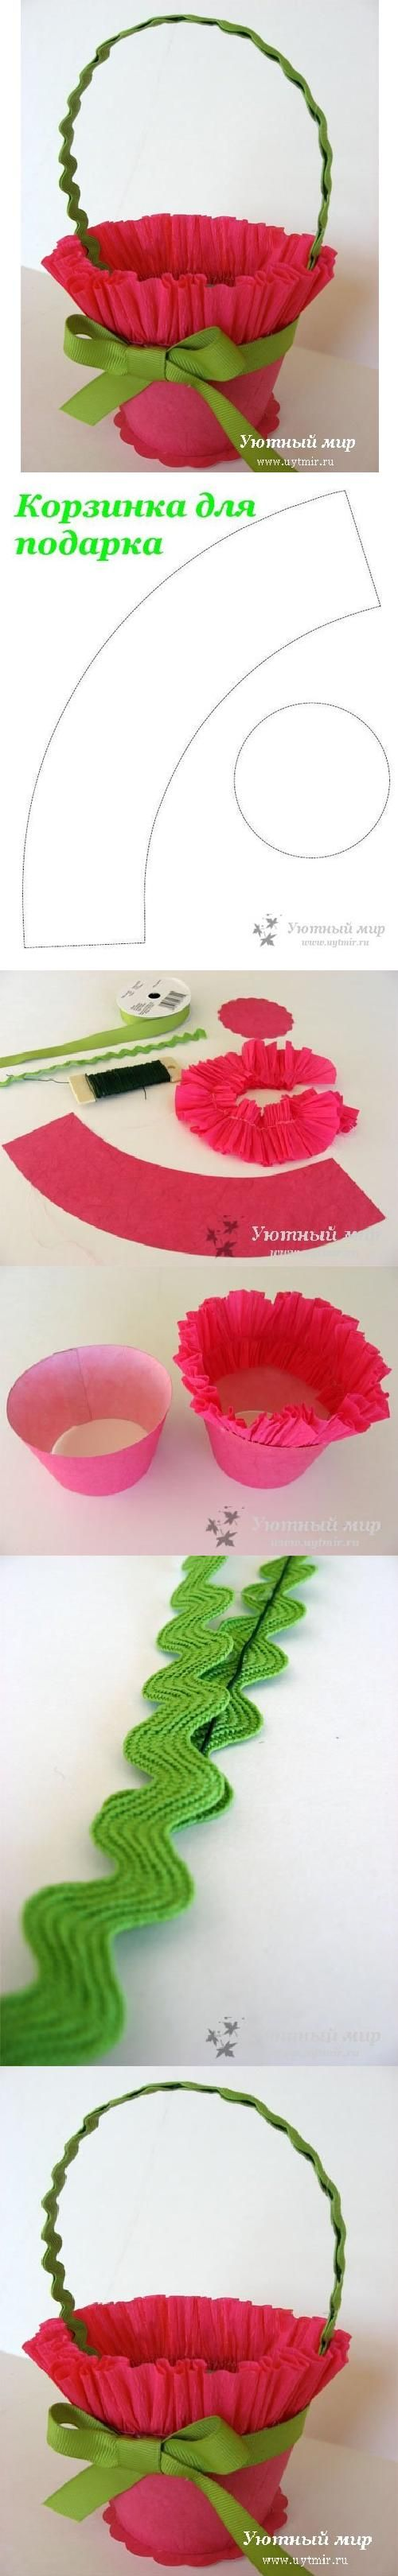 DIY Simple Gift Basket DIY Projects | UsefulDIY.com Follow Us on Facebook ==> http://www.facebook.com/UsefulDiy